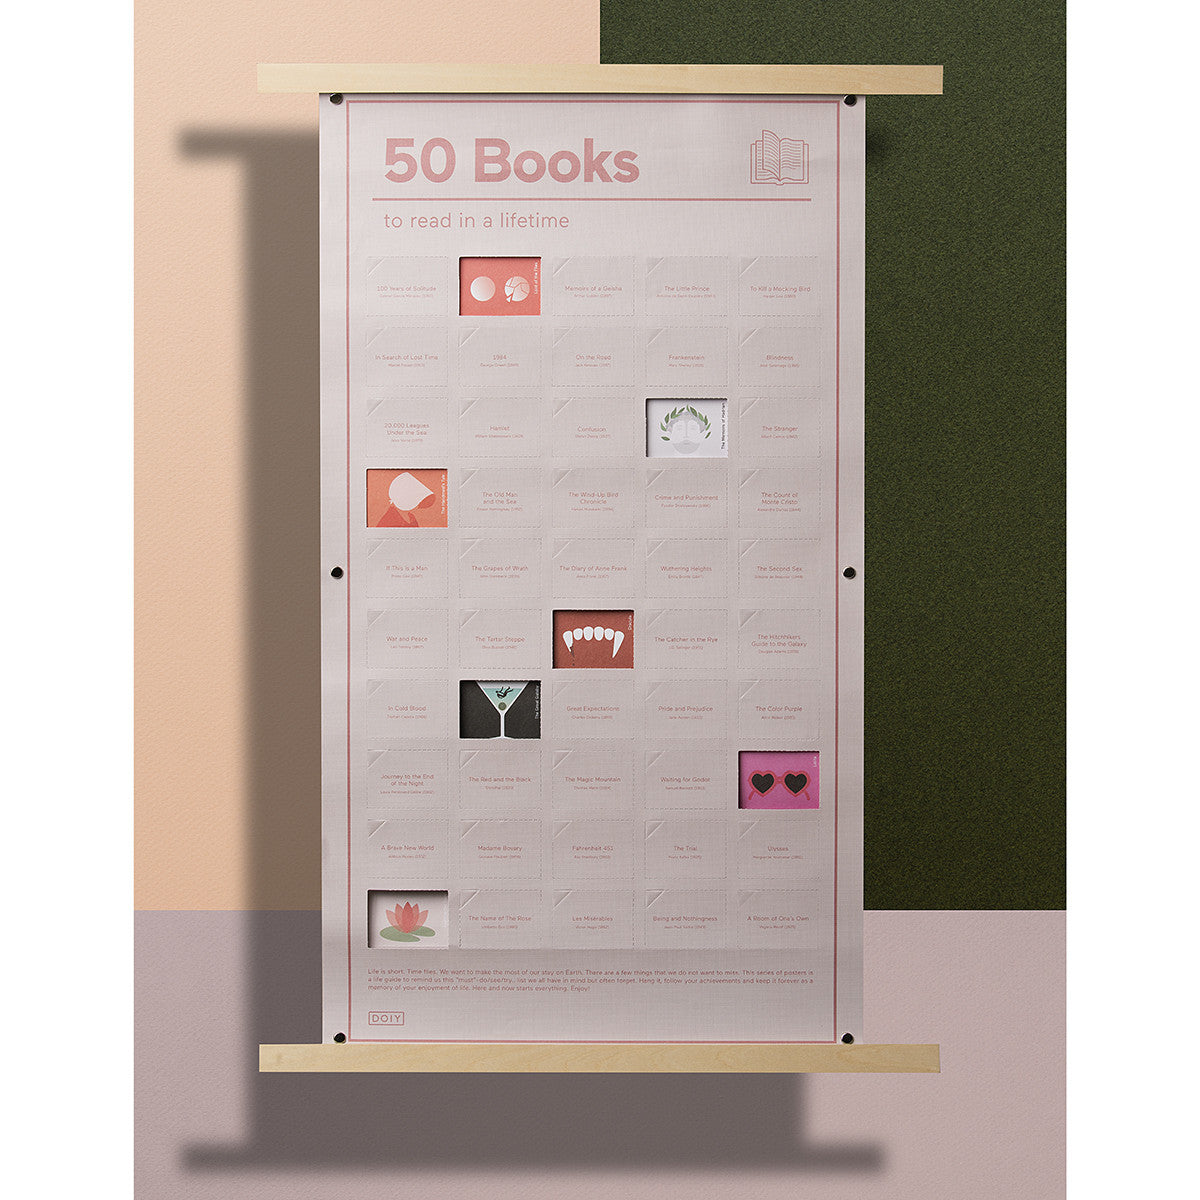 DOIY 50 Books To Read In A Lifetime Poster